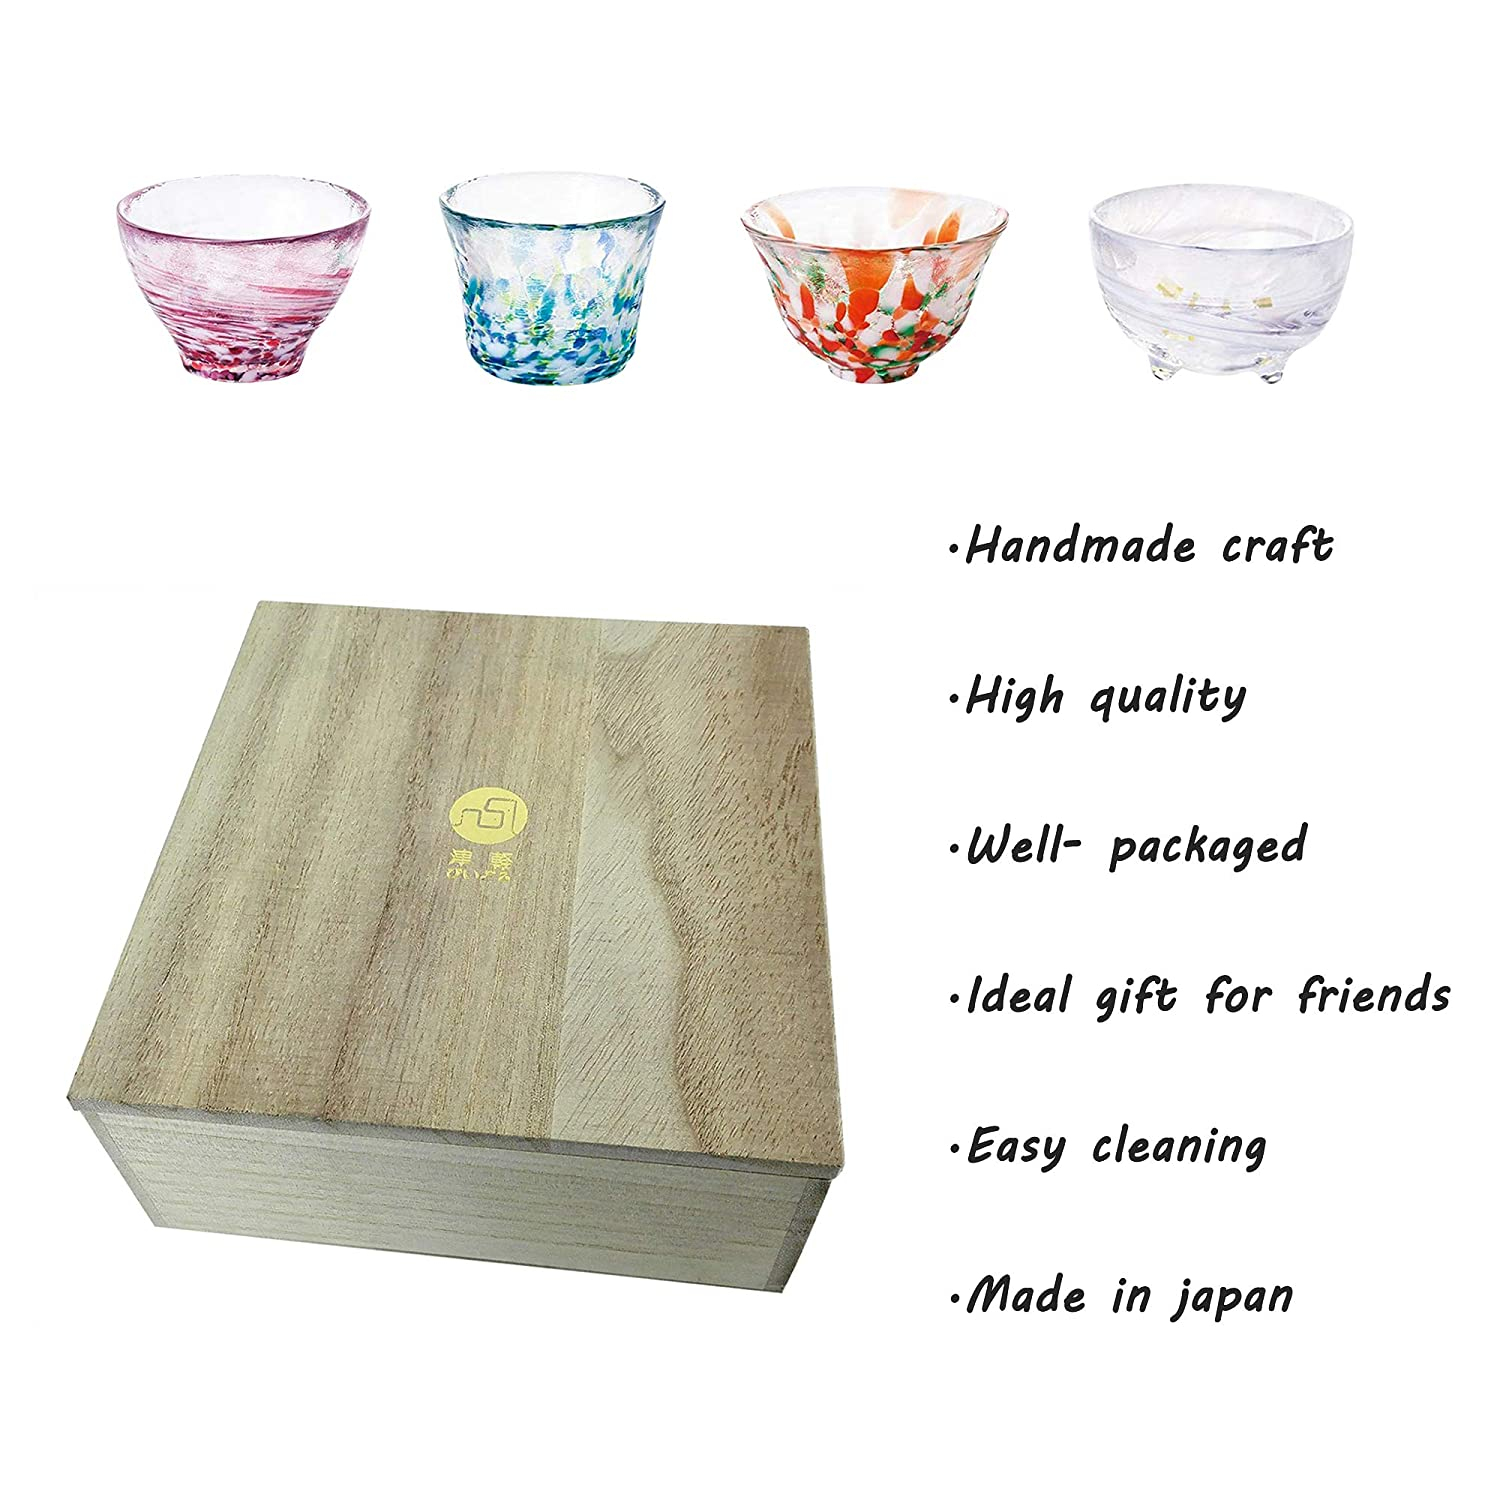 Spring//Summer//Autumn//Winter Cold Sake Glasses Cups Set Traditional Japanese Sake Liquor Glass Collection Drinkware Glasses Handcraft Rainbow Color Teacups Set of 4 with Wood Gift Box 2.87ounce